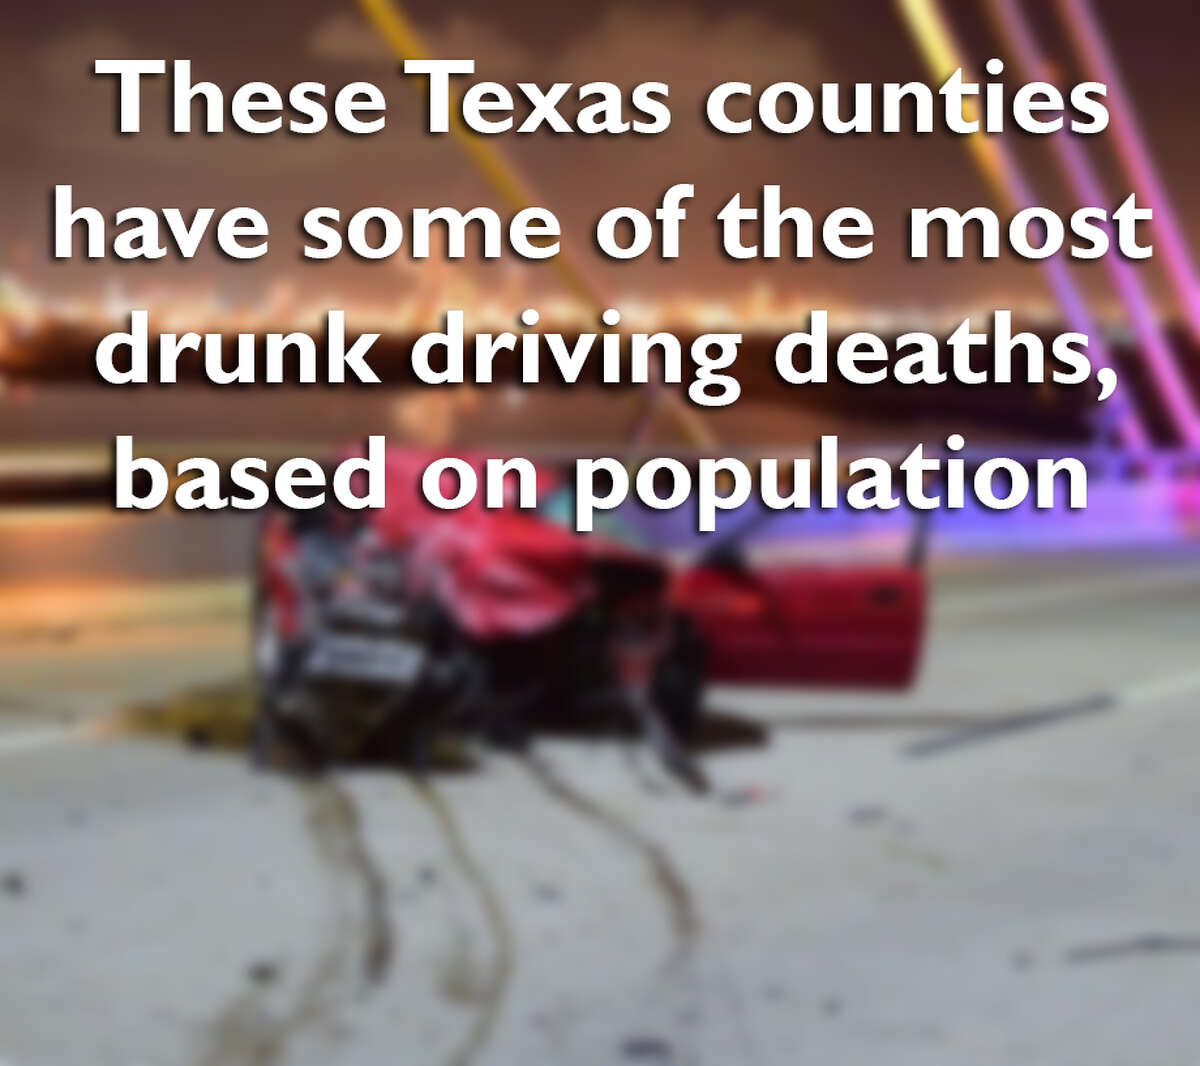 Swipe through to see what Texas counties have reported the most drunk driving deaths.